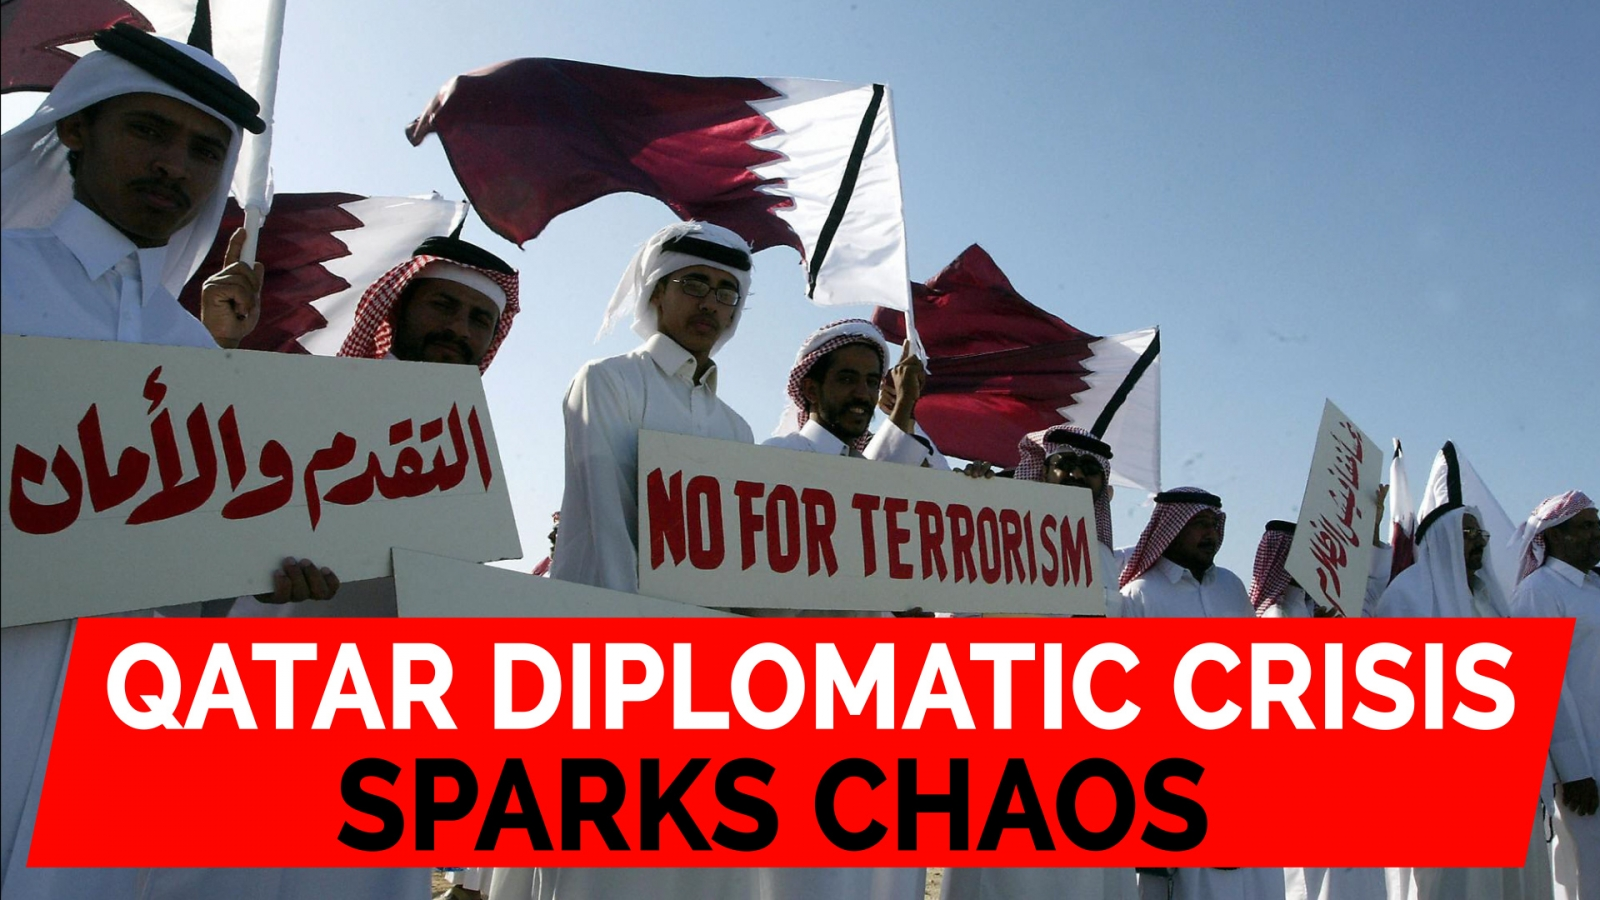 qatar-diplomatic-crisis-chaos-among-people-after-gulf-nations-cut-ties-with-country